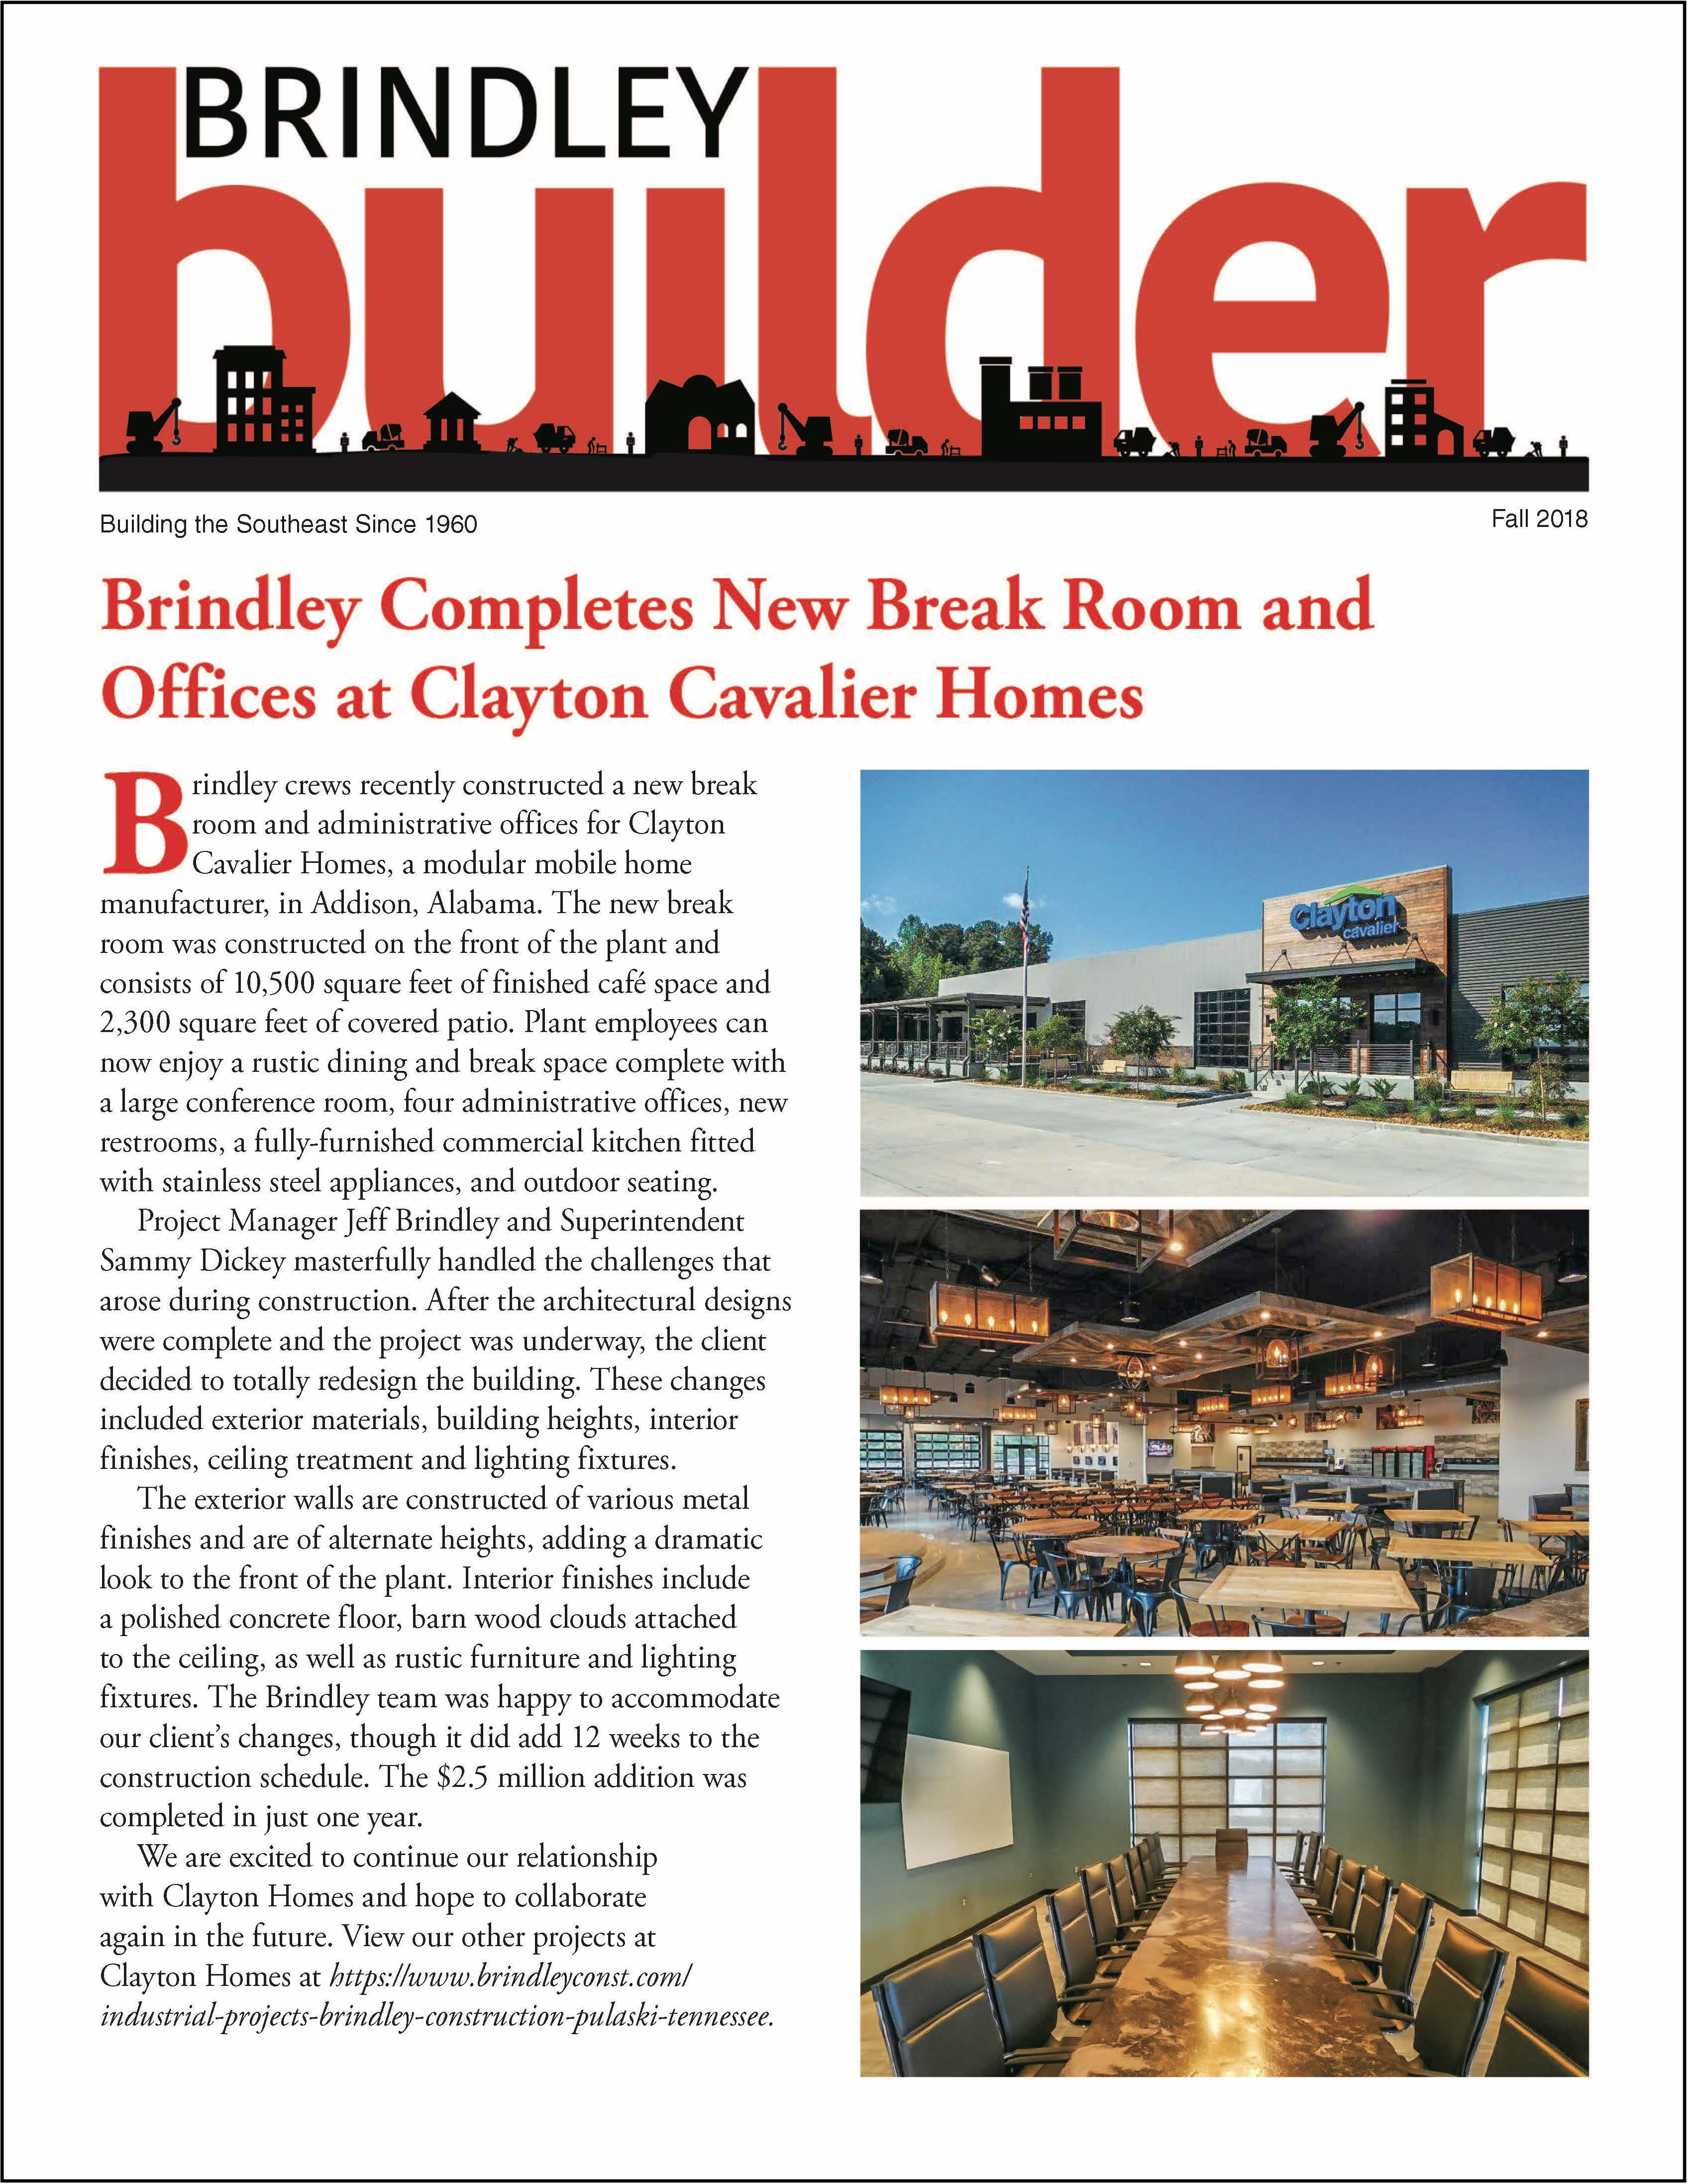 The Brindley Builder | Fall 2018 Issue | Brindley Construction